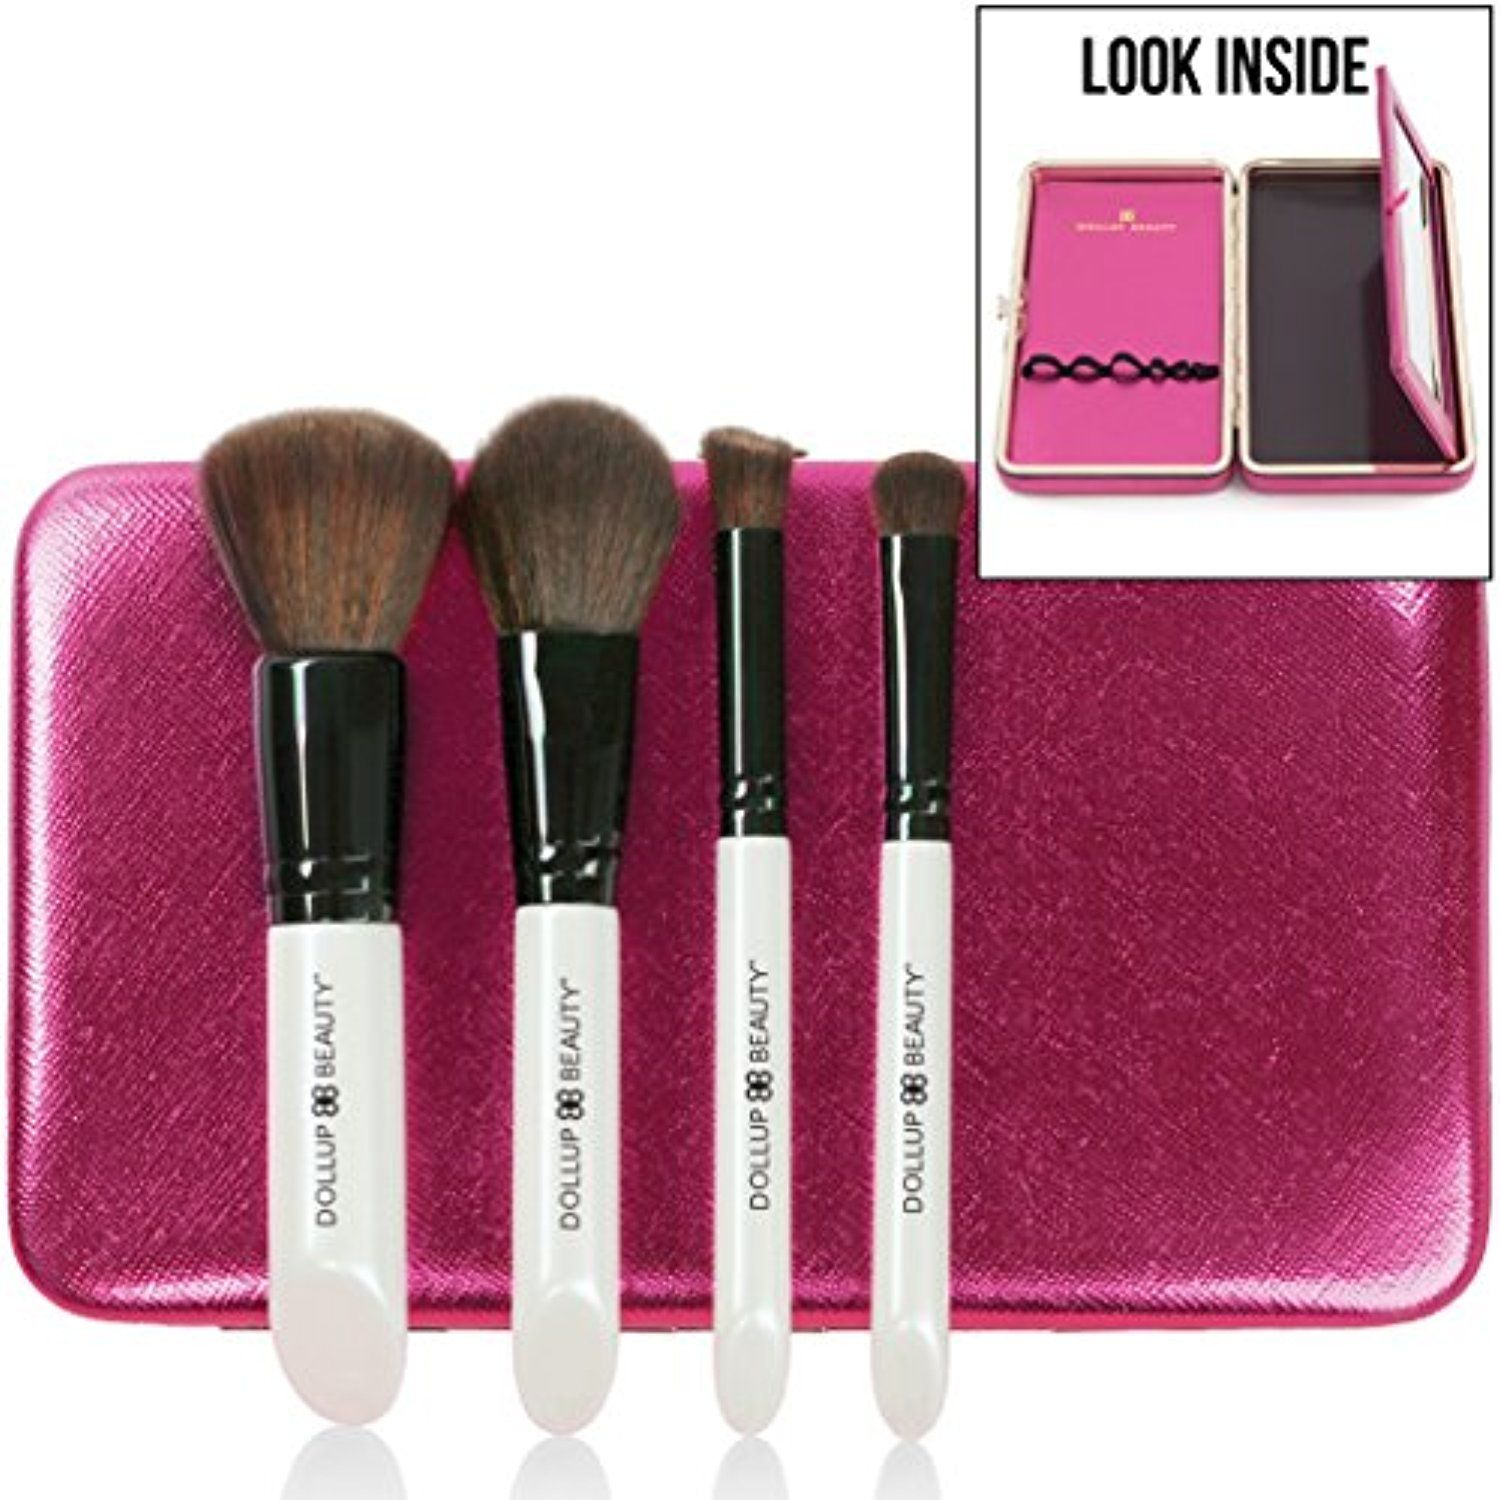 NEW Small Travel Makeup Brush Set ToolsAccessories